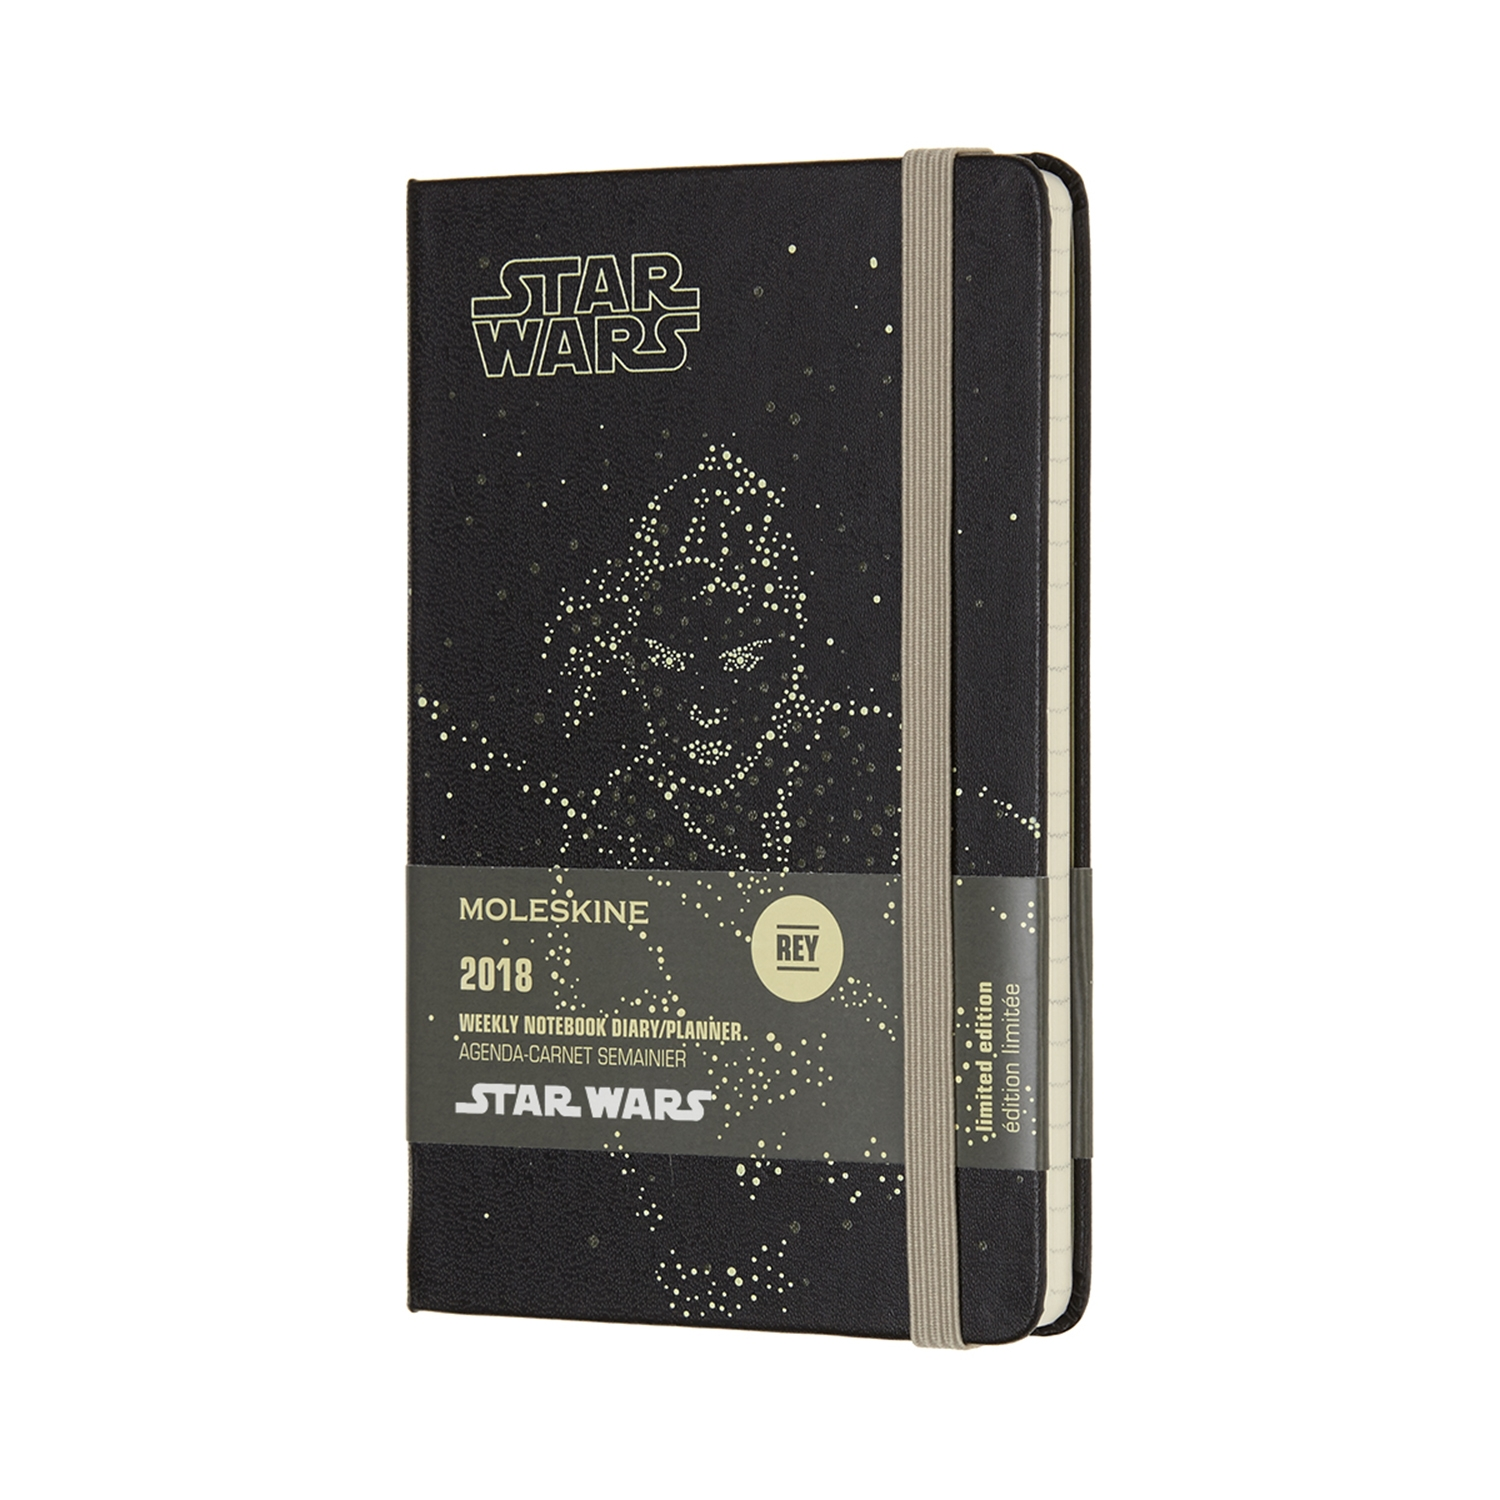 MOLESKINE 12M STAR WARS WEEKLY NOTEBOOK POCKET REY by MOLESKINE